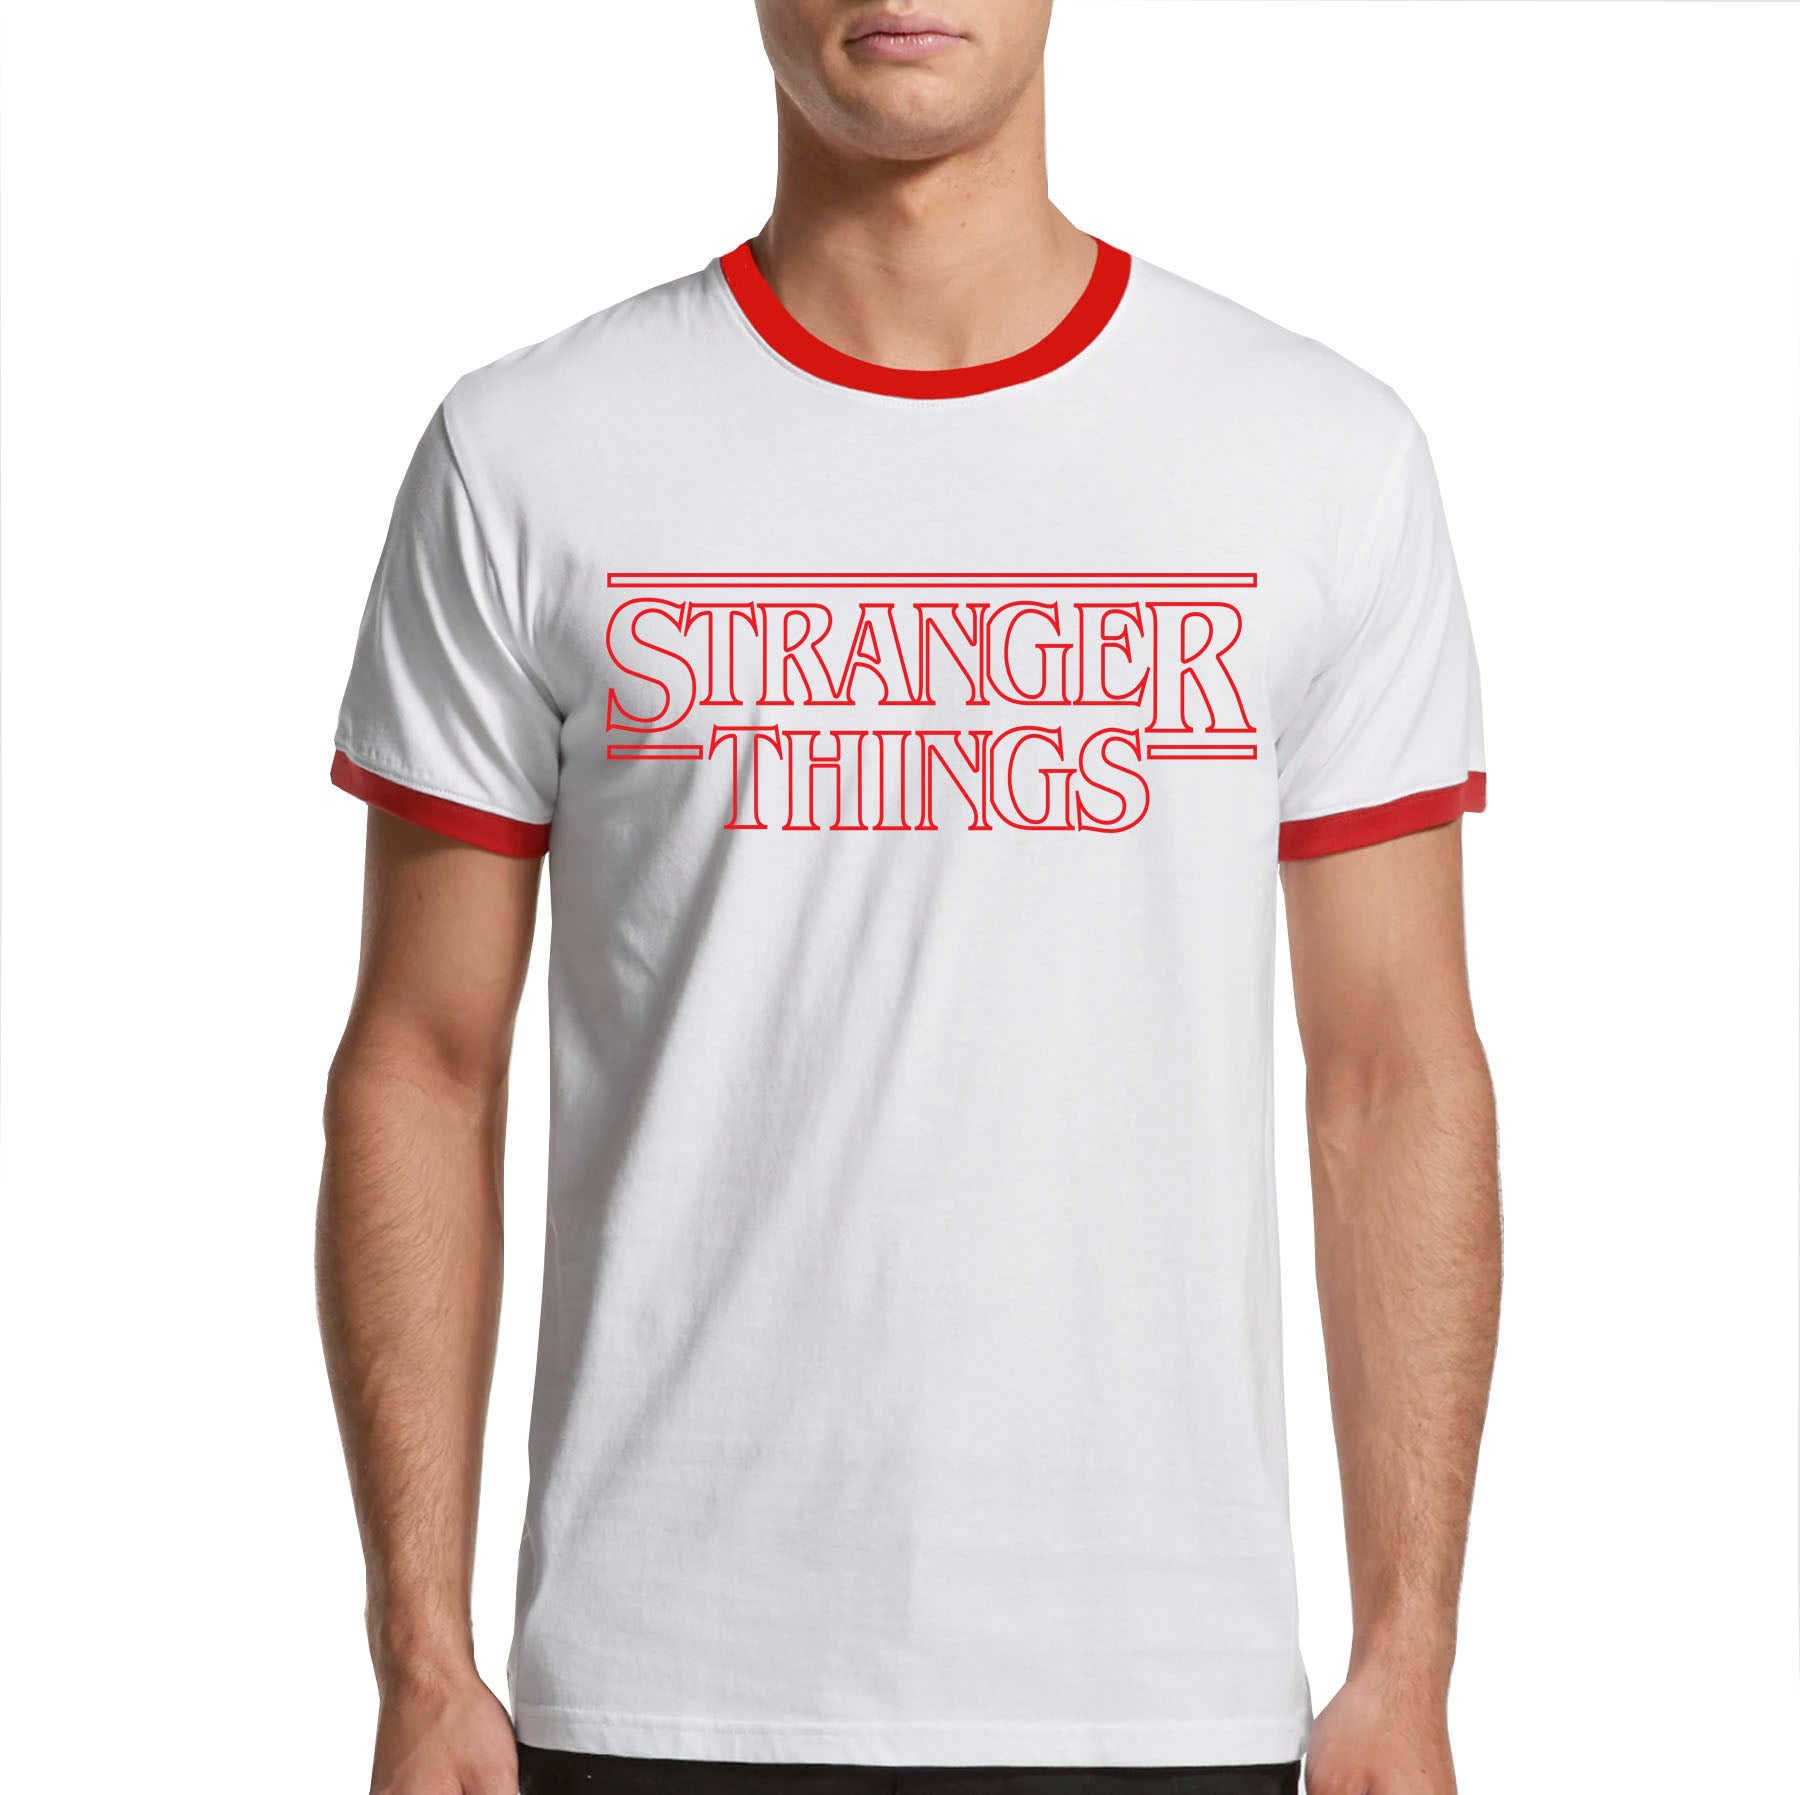 Stranger Things Ringer T-shirt